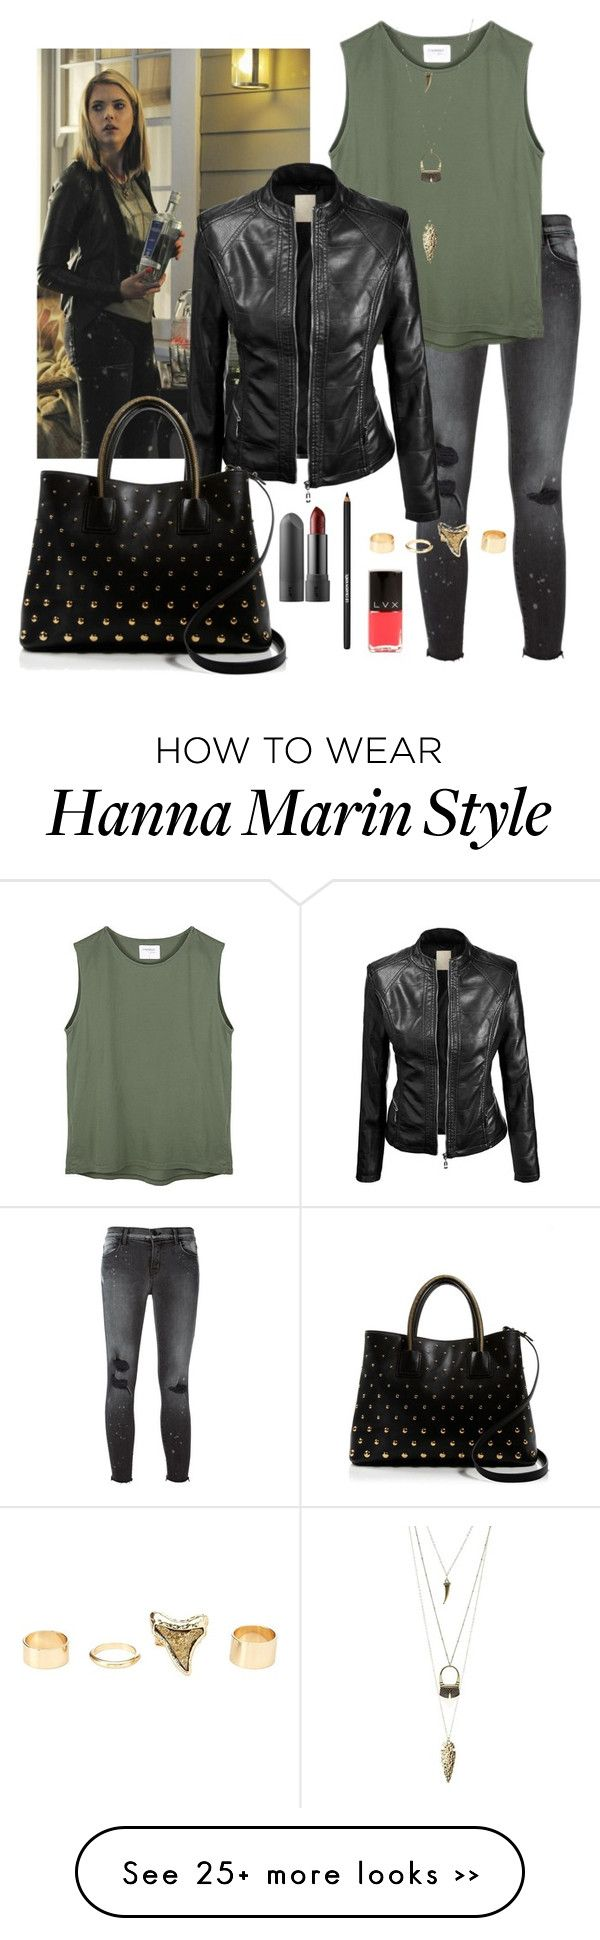 """Hannah Marin - Pretty Little Liars S5E7"" by fulltimeoverthinker on Polyvore"